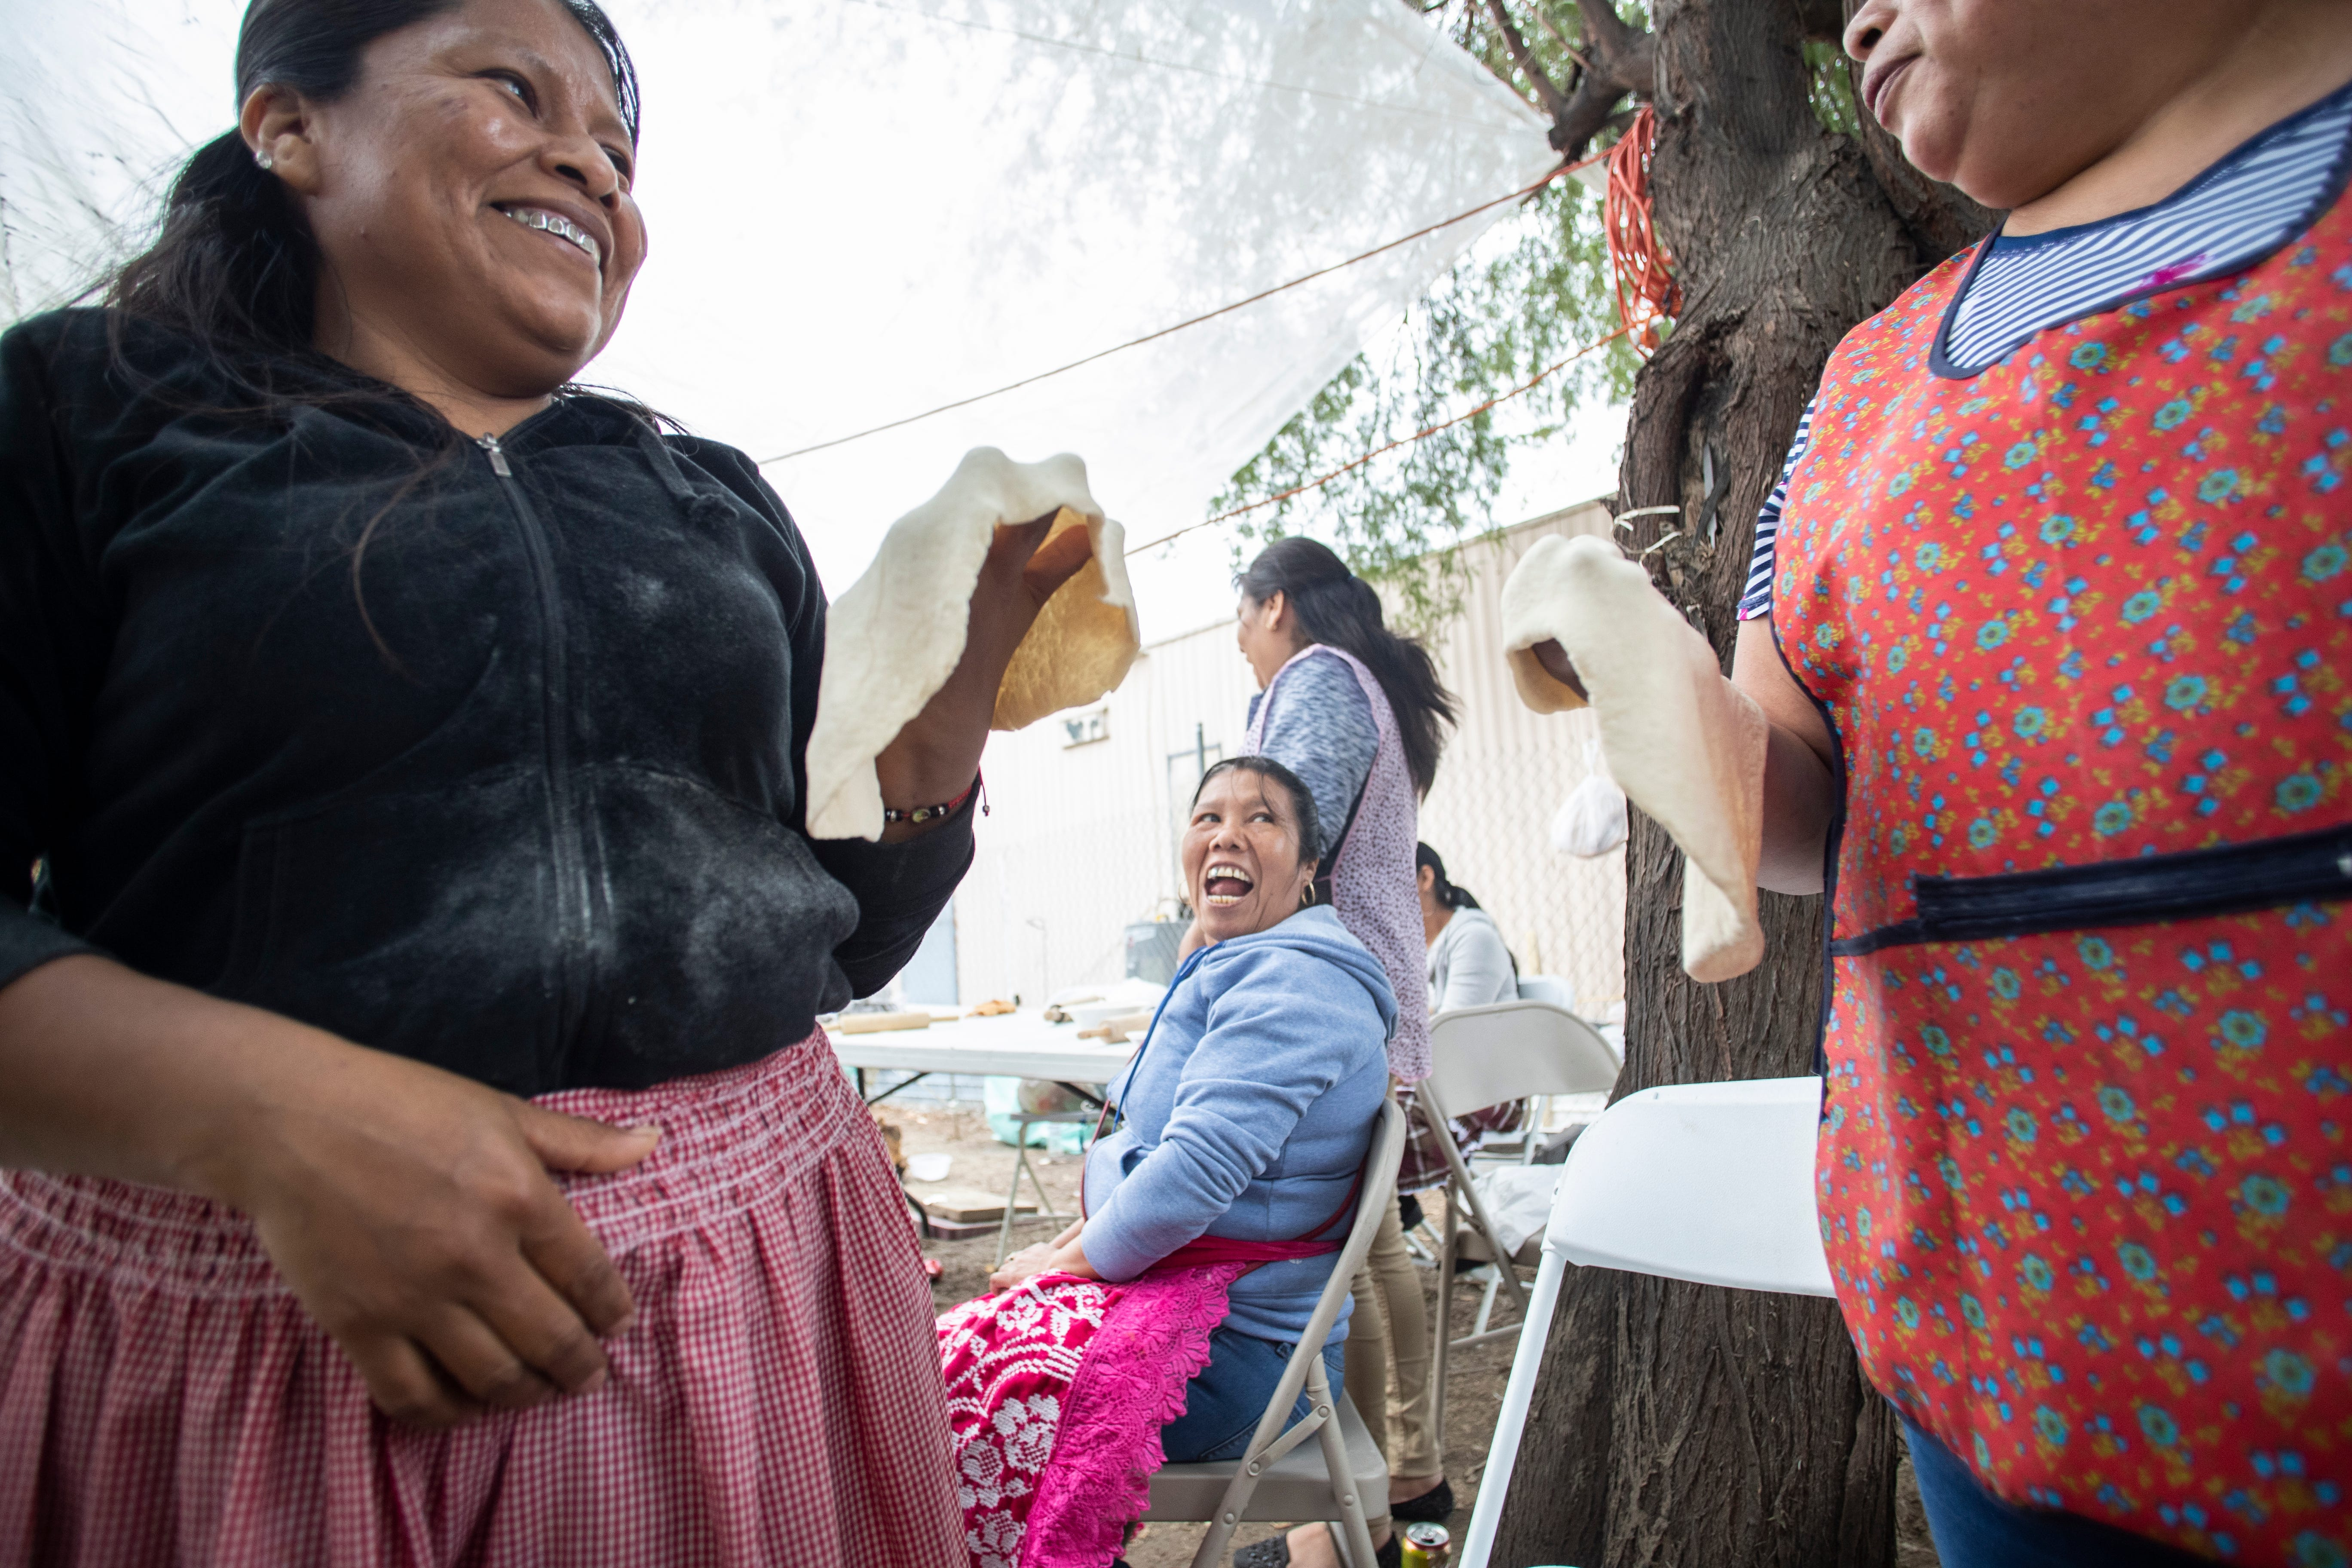 """From left Josefina Basilio, Macaria Pascual and Francisca Vicente enjoy a laugh while preparing """"buñuelos"""", a Mexican pastry made of flour."""